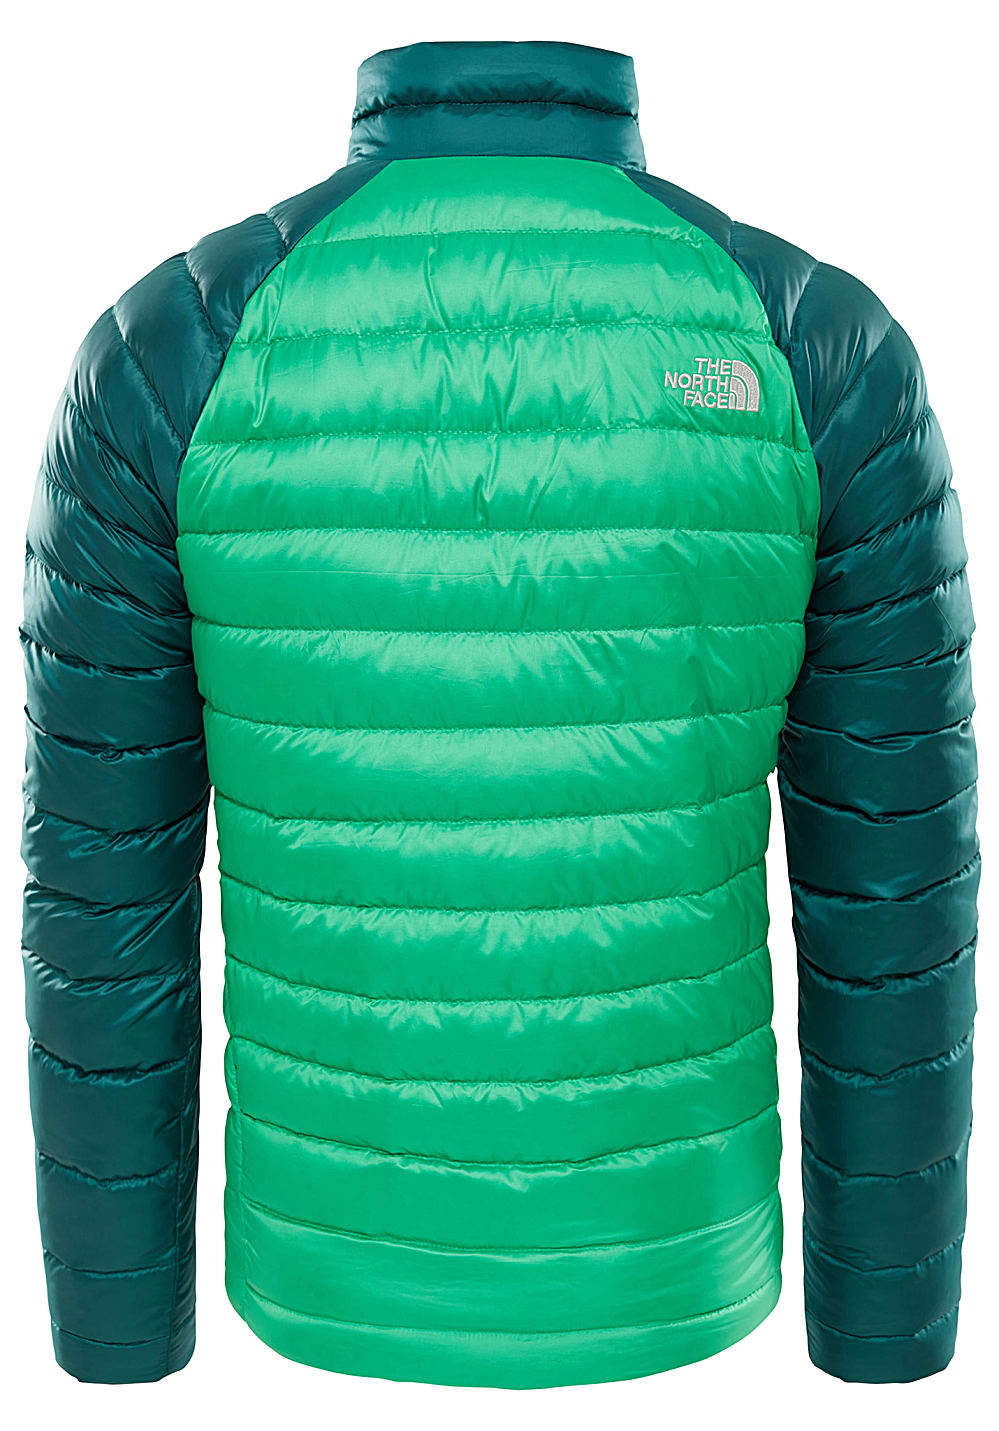 fa92eb060 THE NORTH FACE Trevail - Functional Jacket for Men - Green